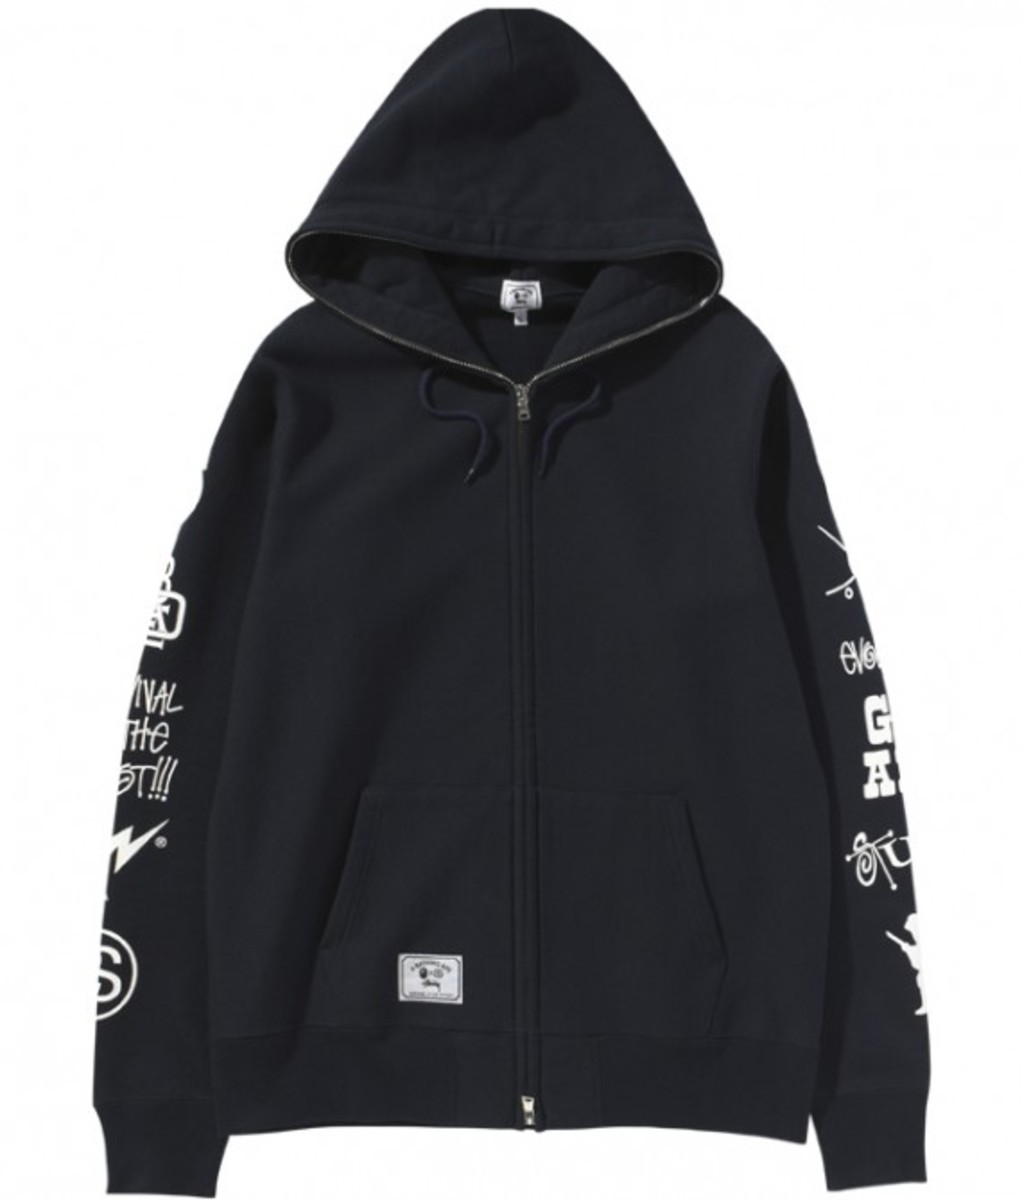 stussy-bape-survival-of-the-fittest-2-20